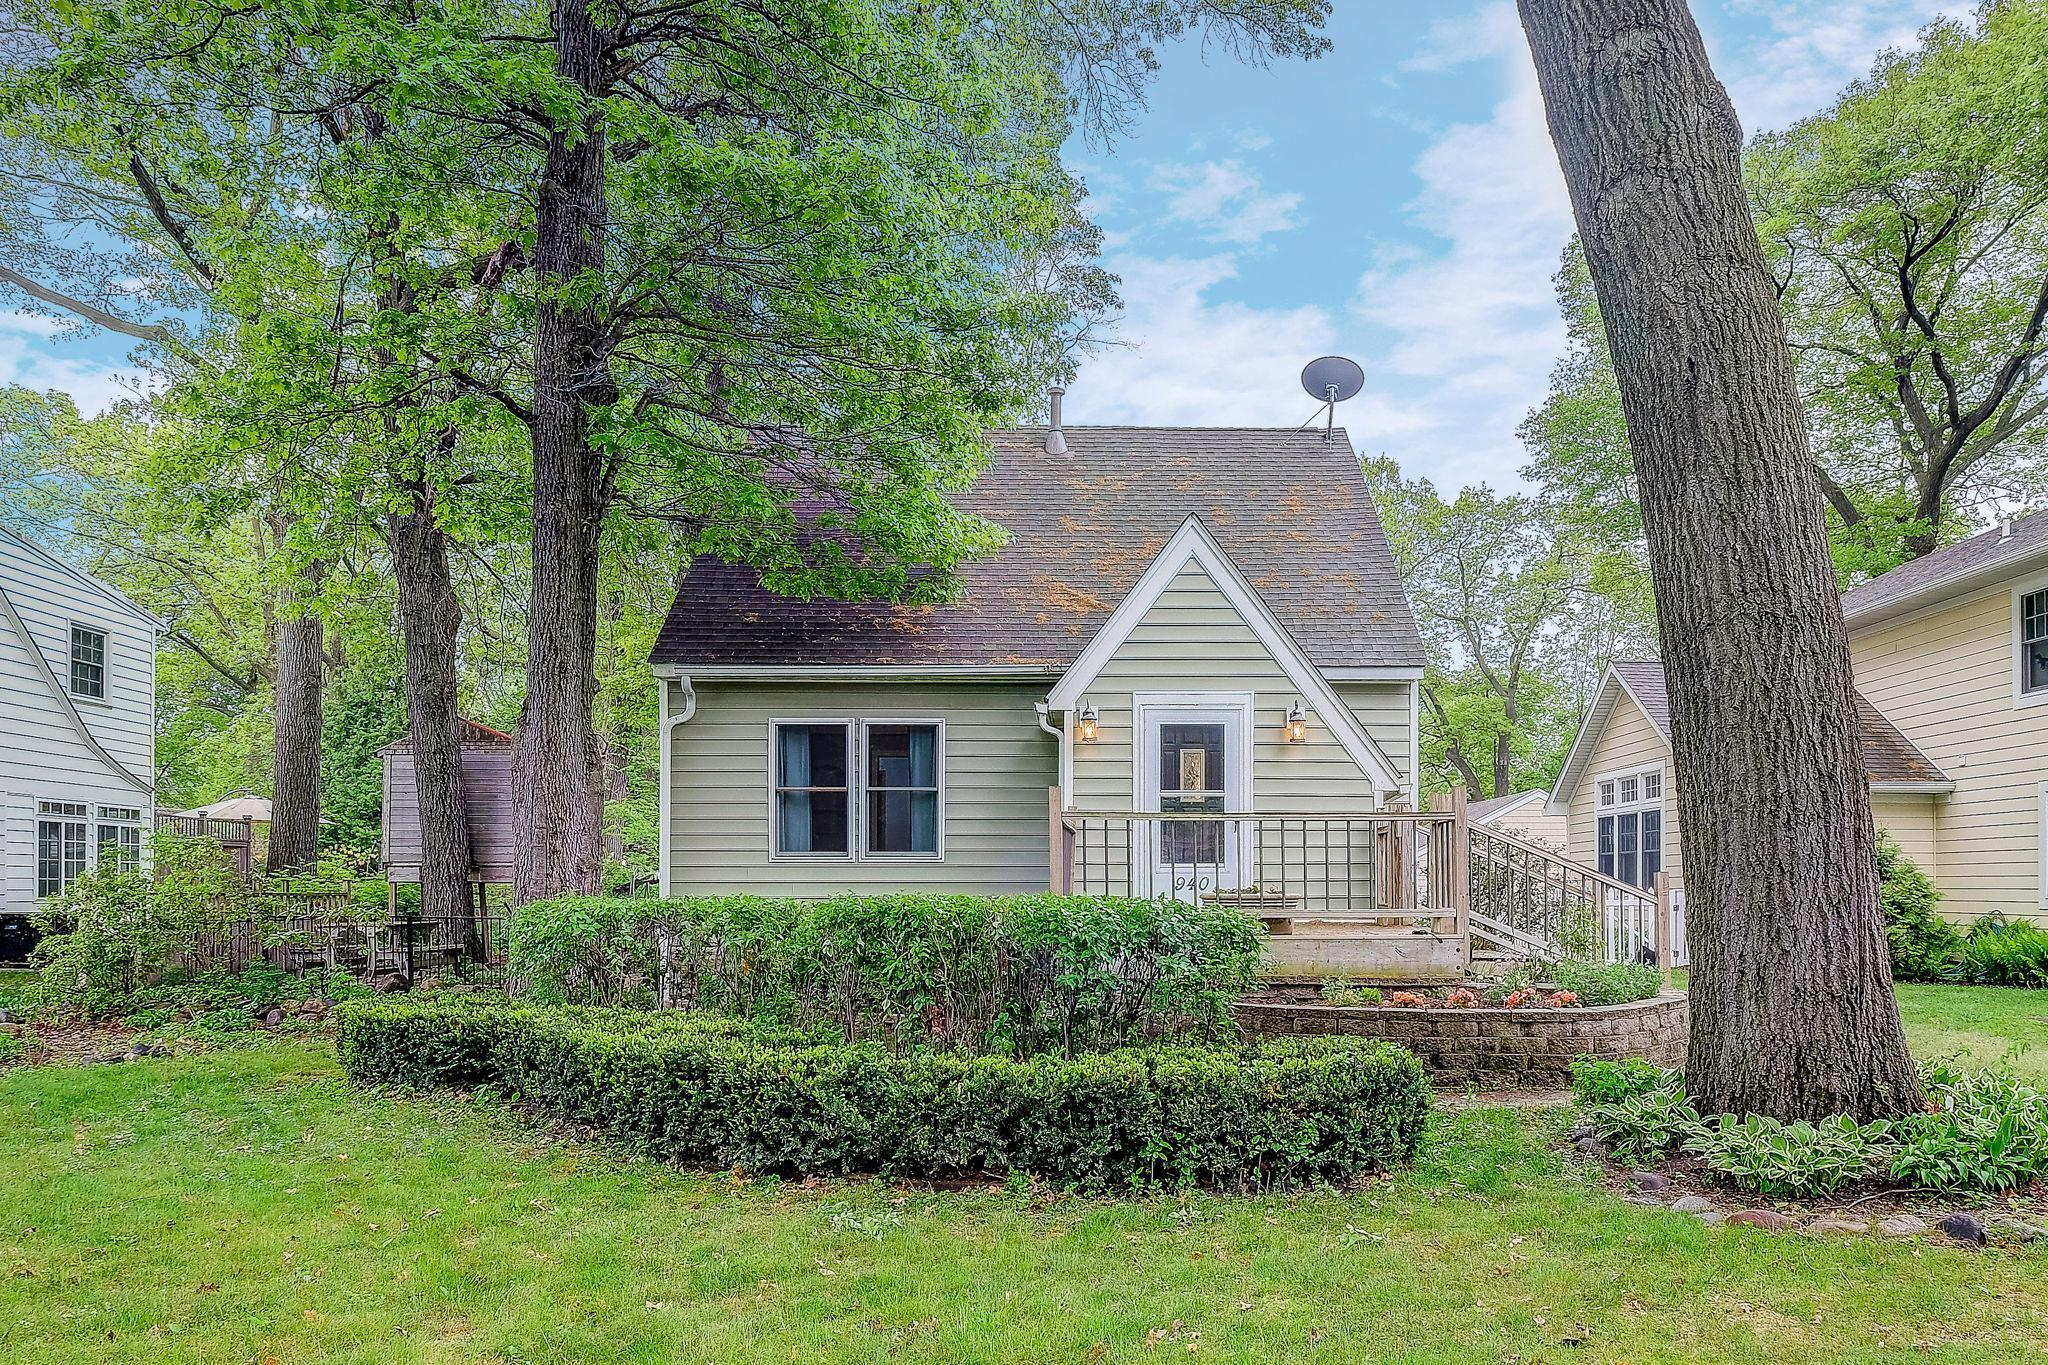 Photo of 940 County Road B W, Roseville, MN 55113